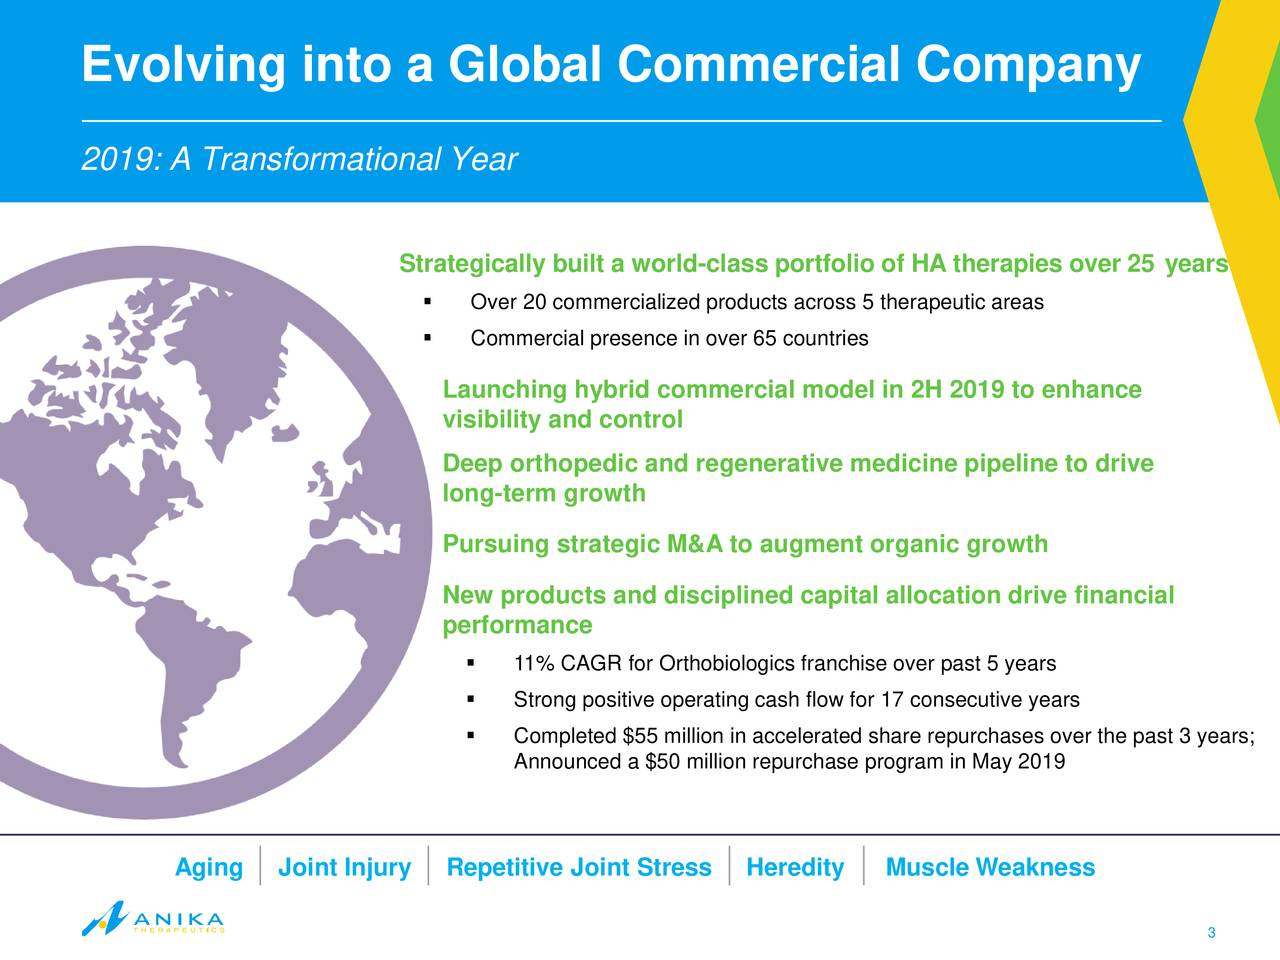 Evolving into a Global Commercial Company